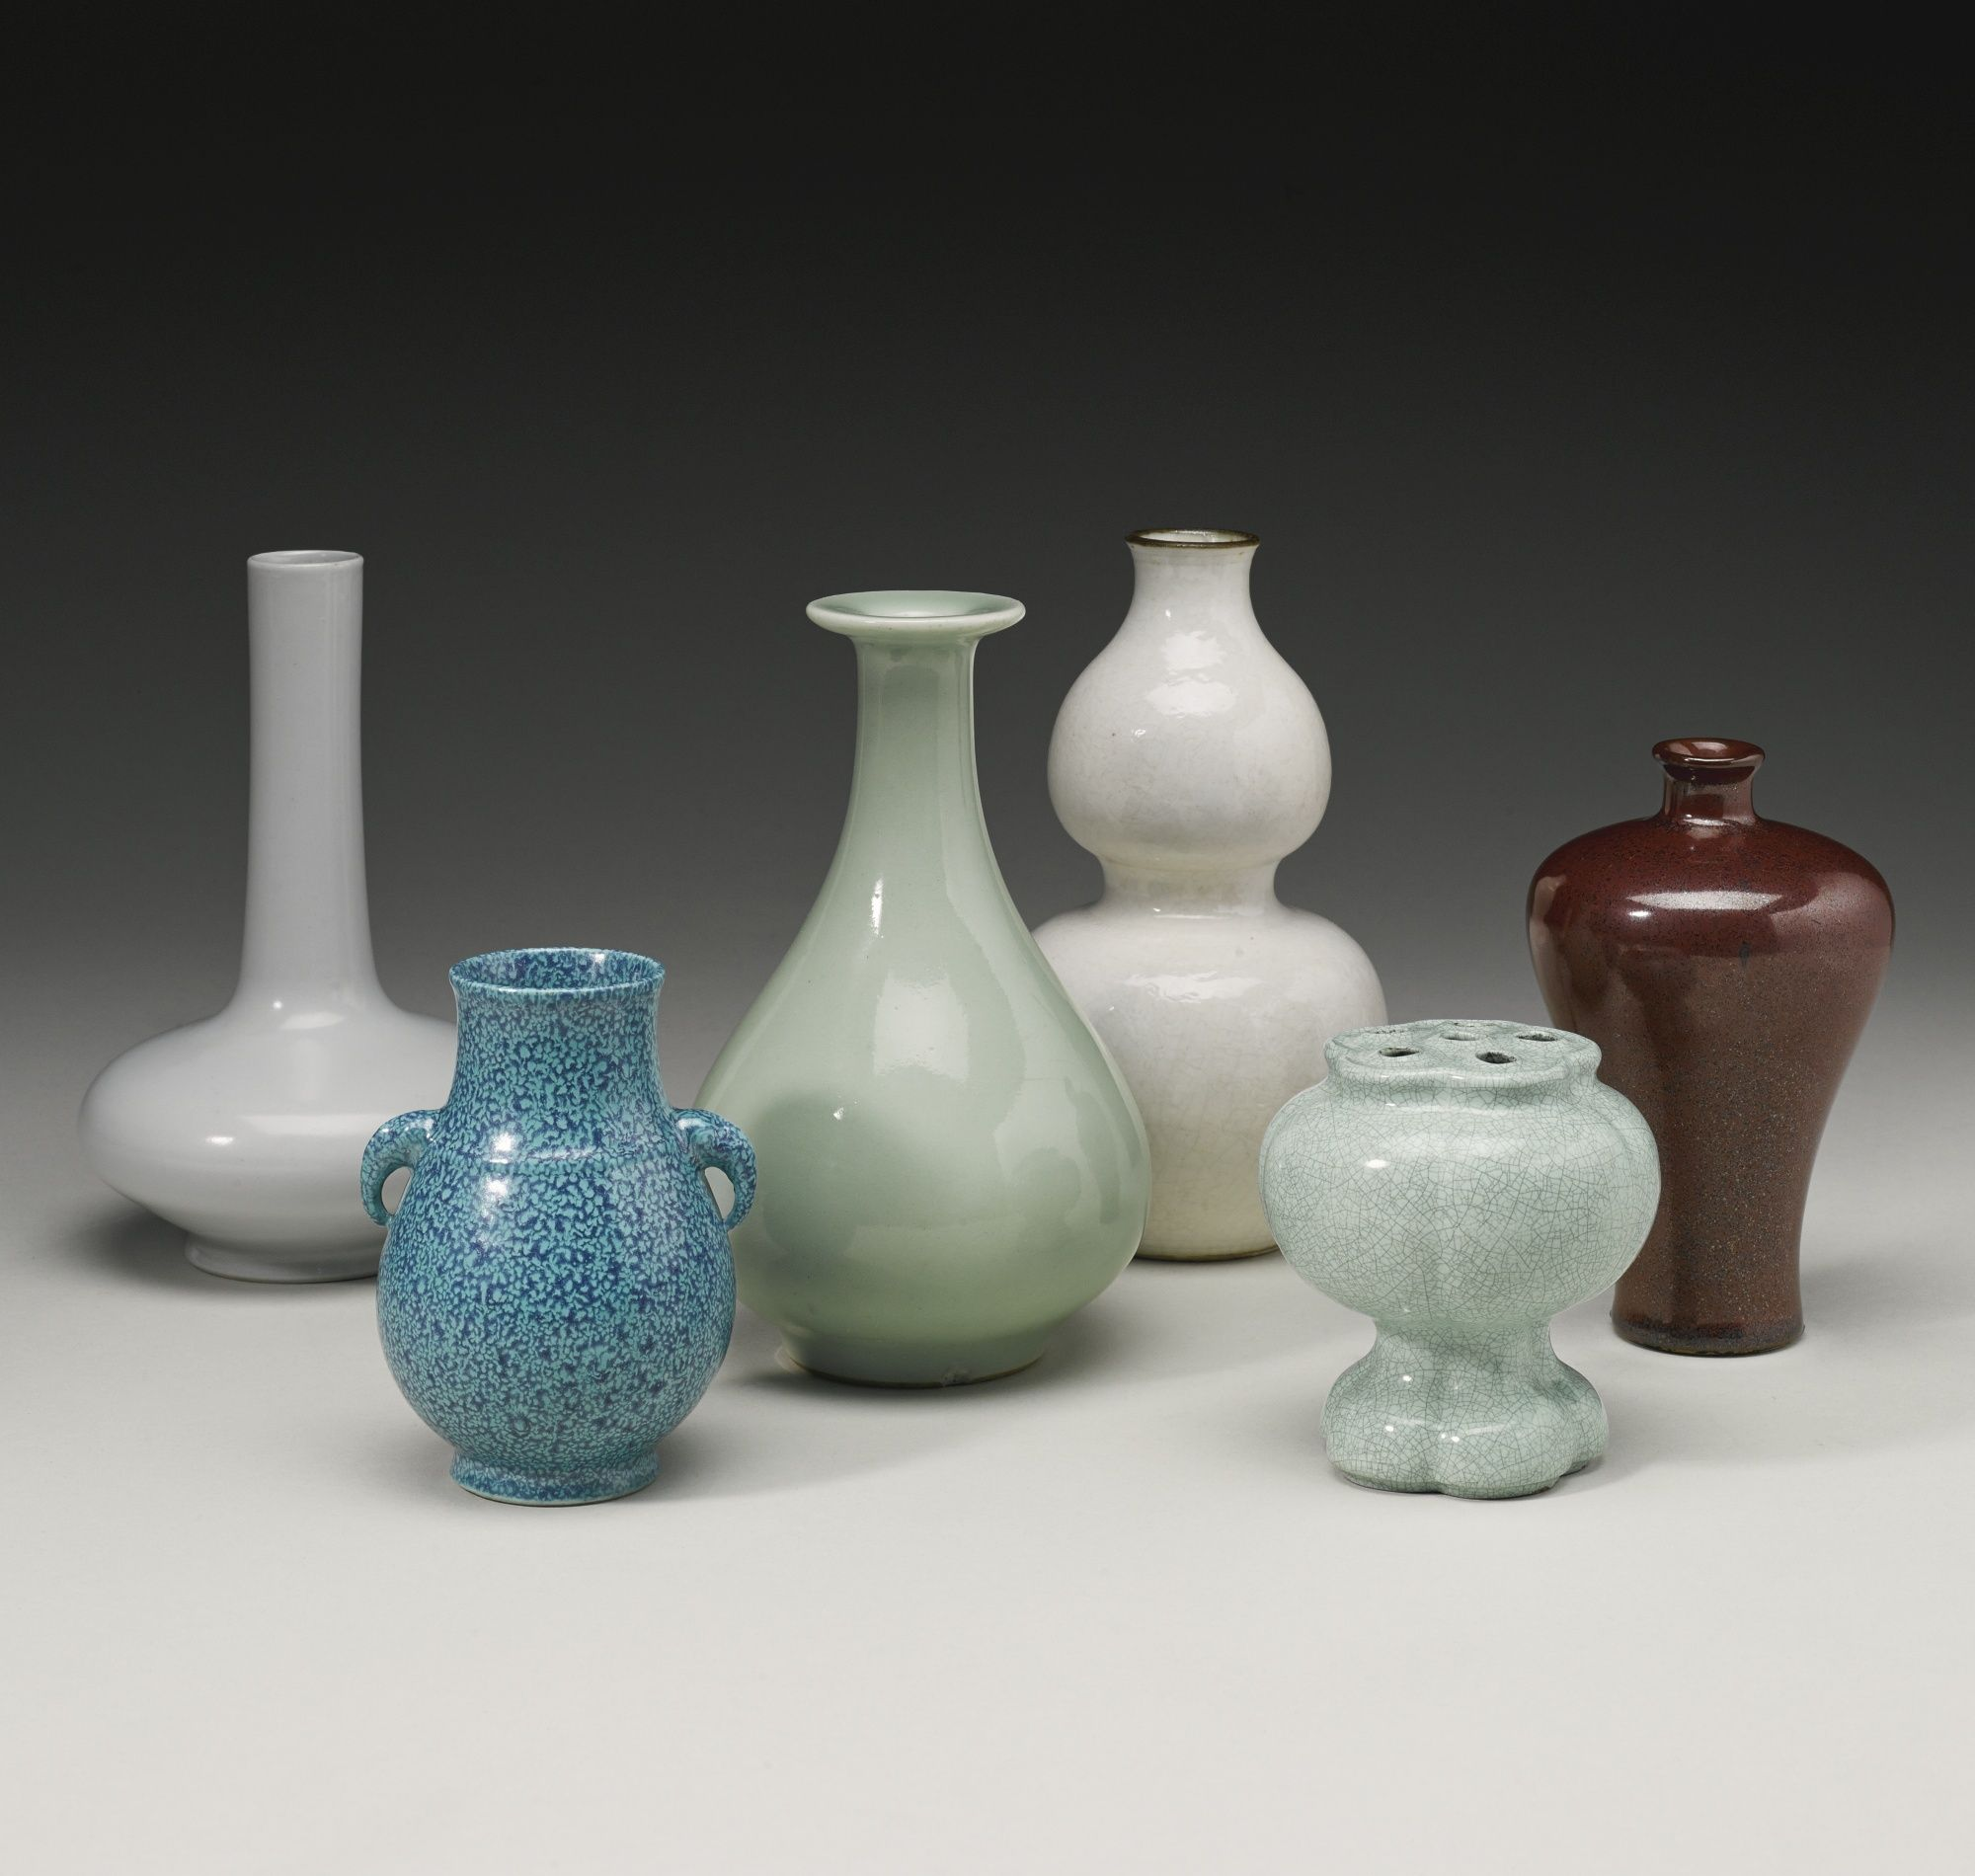 Image result for A GROUP OF SIX MONOCHROME VASES QING DYNASTY, 17TH - 19TH CENTURY